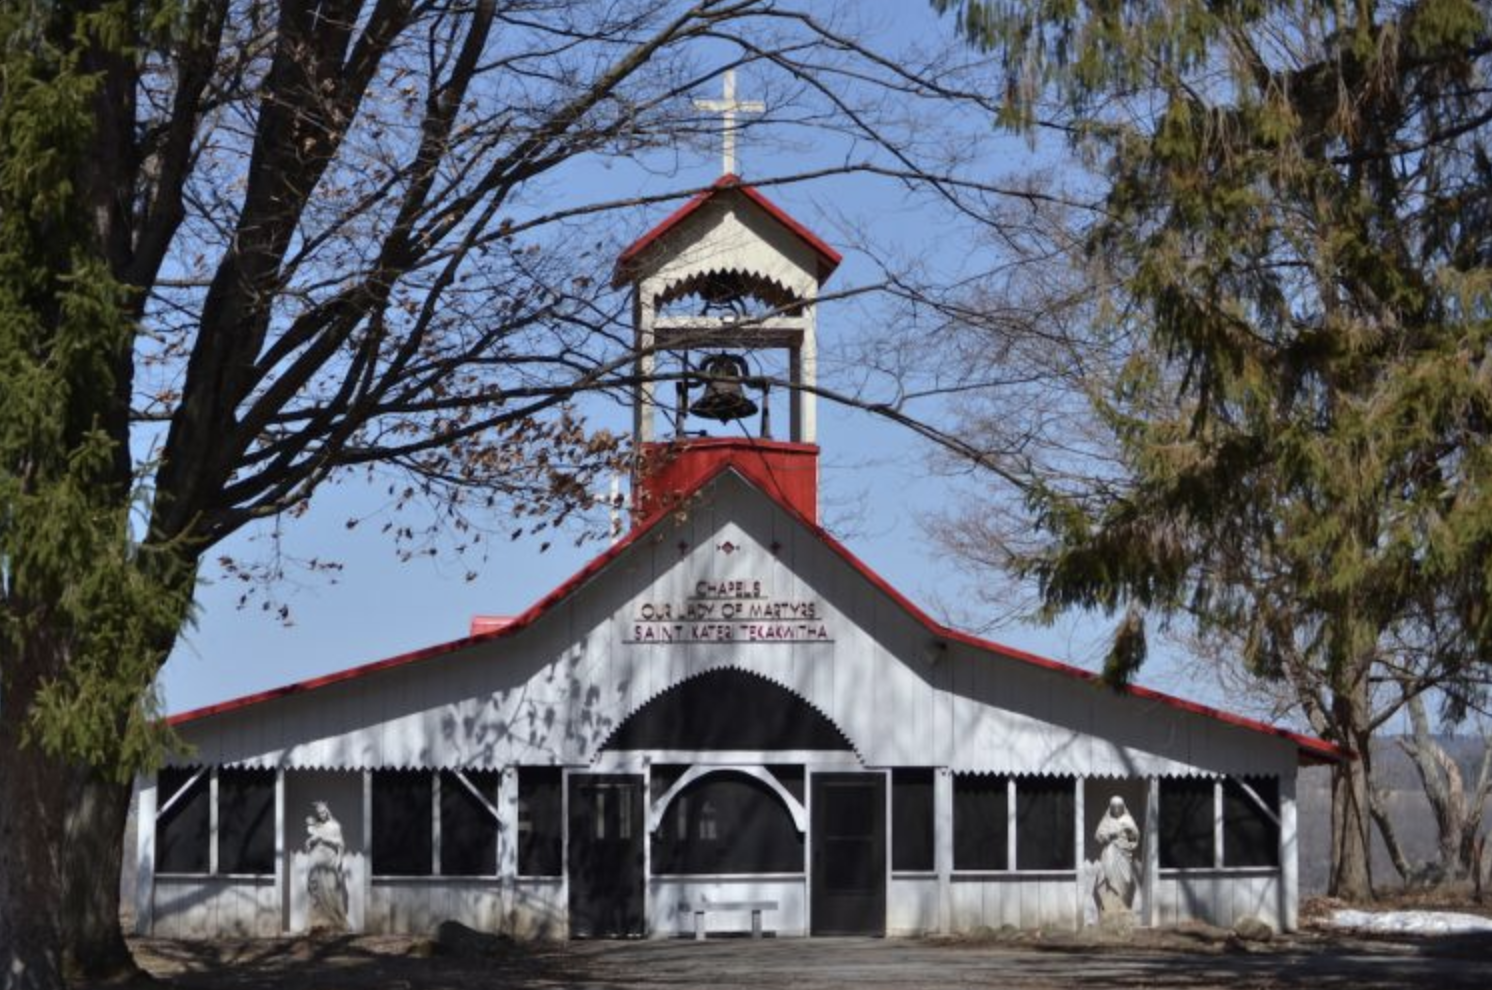 OUR LADY OF MARTYRS SHRINE